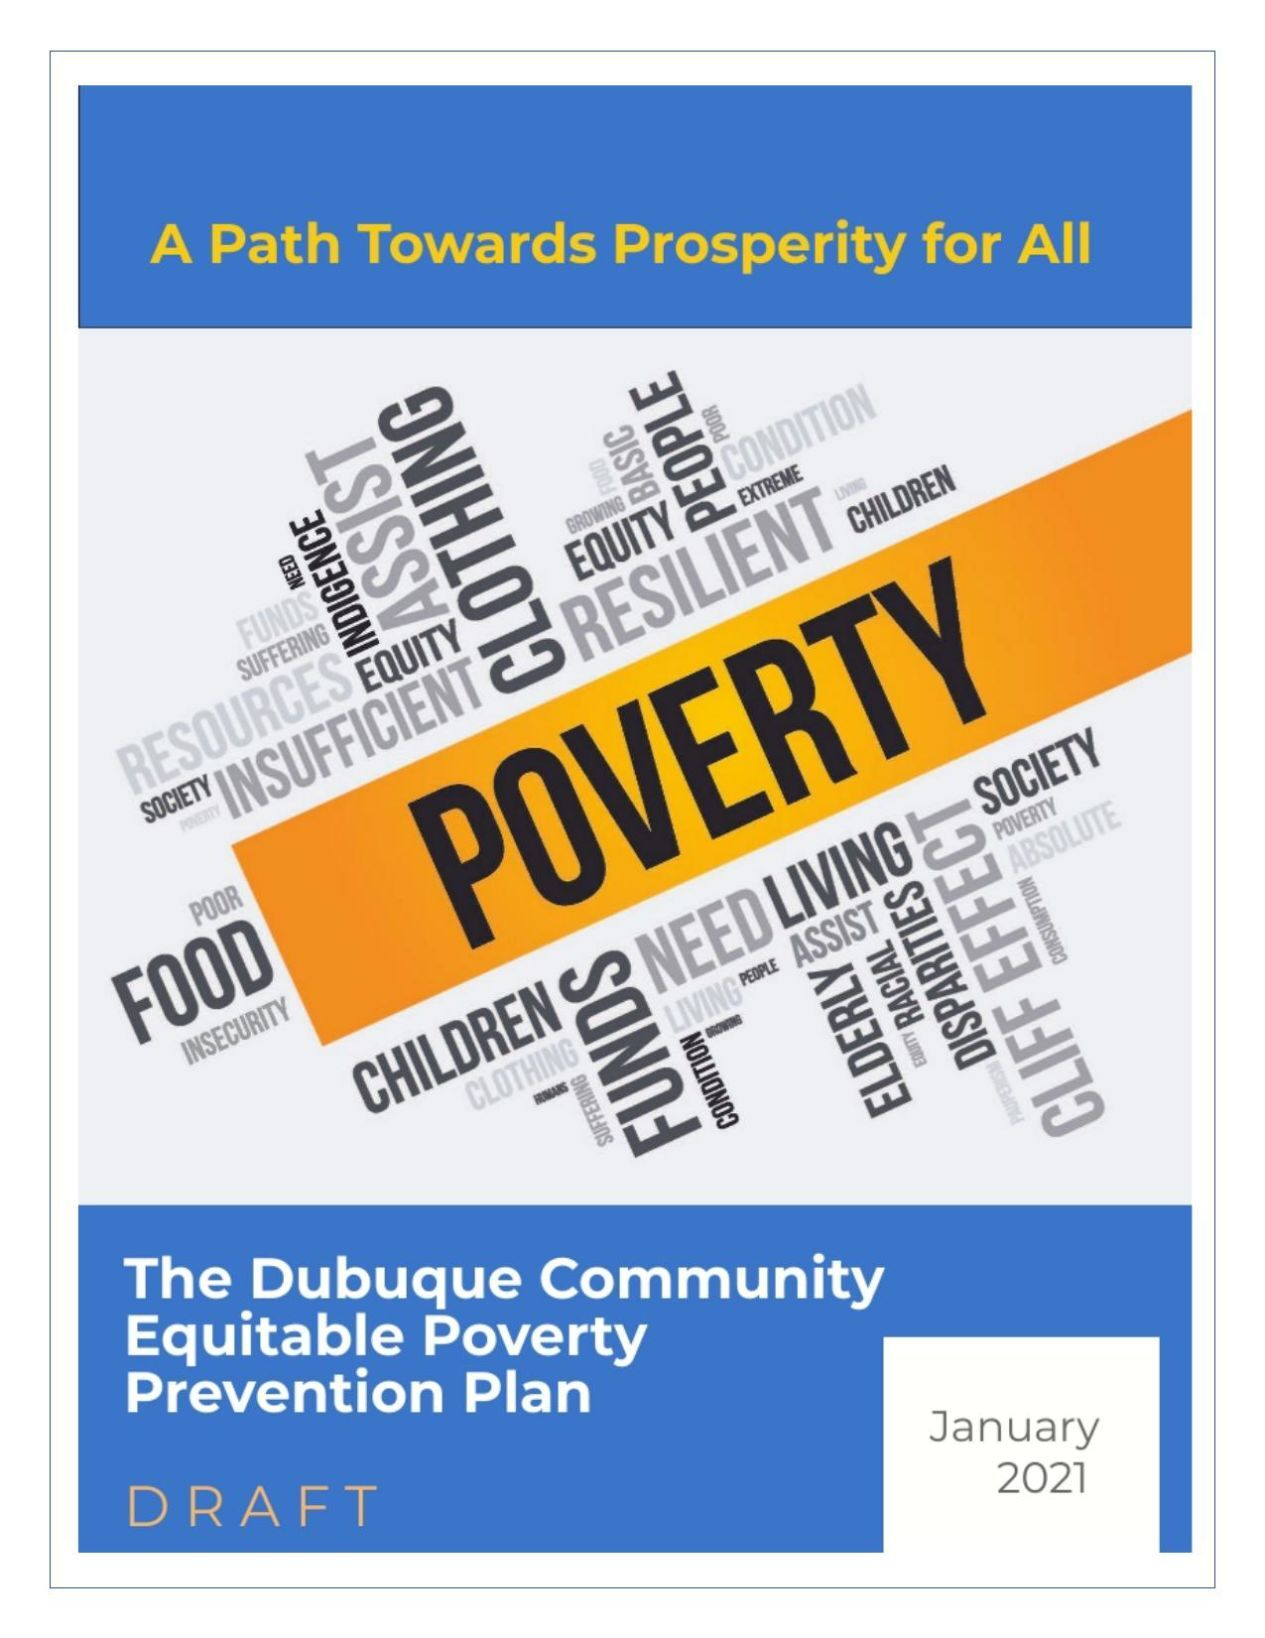 Draft Equitable Poverty Prevention Plan